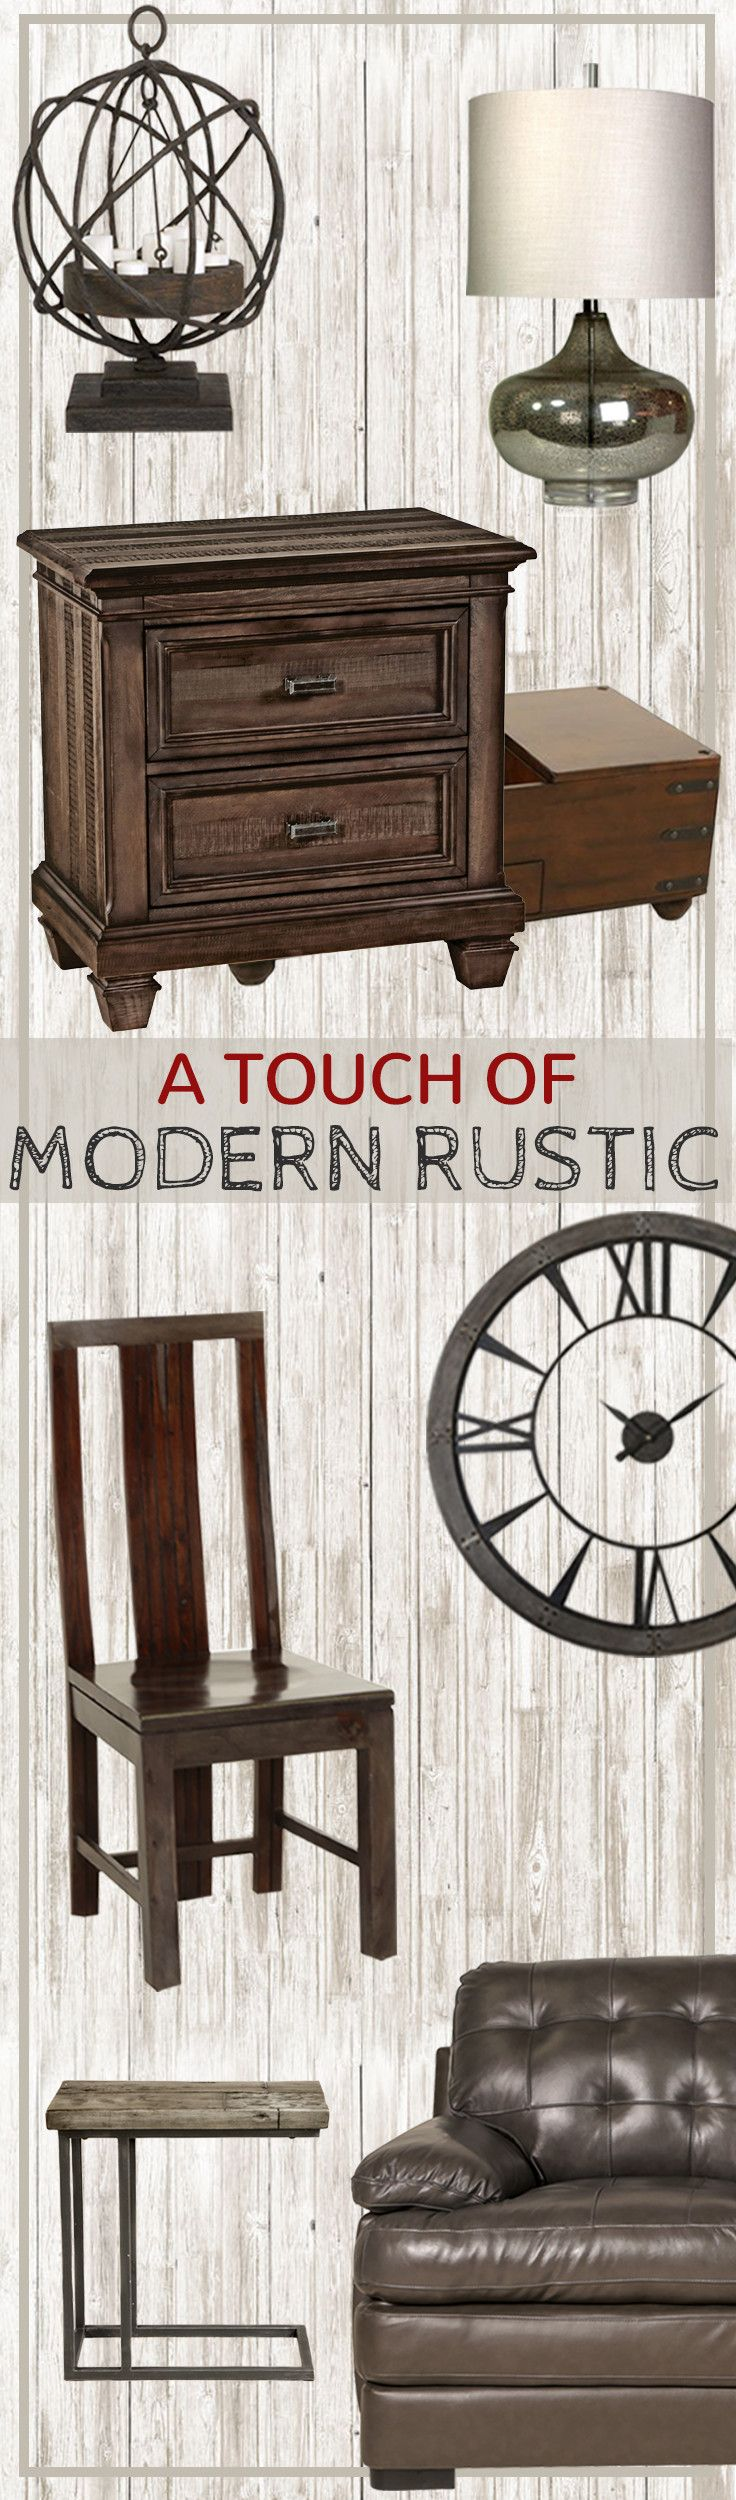 If you love a woodsy sophistication with a dash of glam, then modern rustic is the perfect style for your home! Achieve the look with modern furniture pieces made from wood or leather that are designed with clean lines. Compliment the furniture with décor featuring natural elements such as wood, metal, or stones.